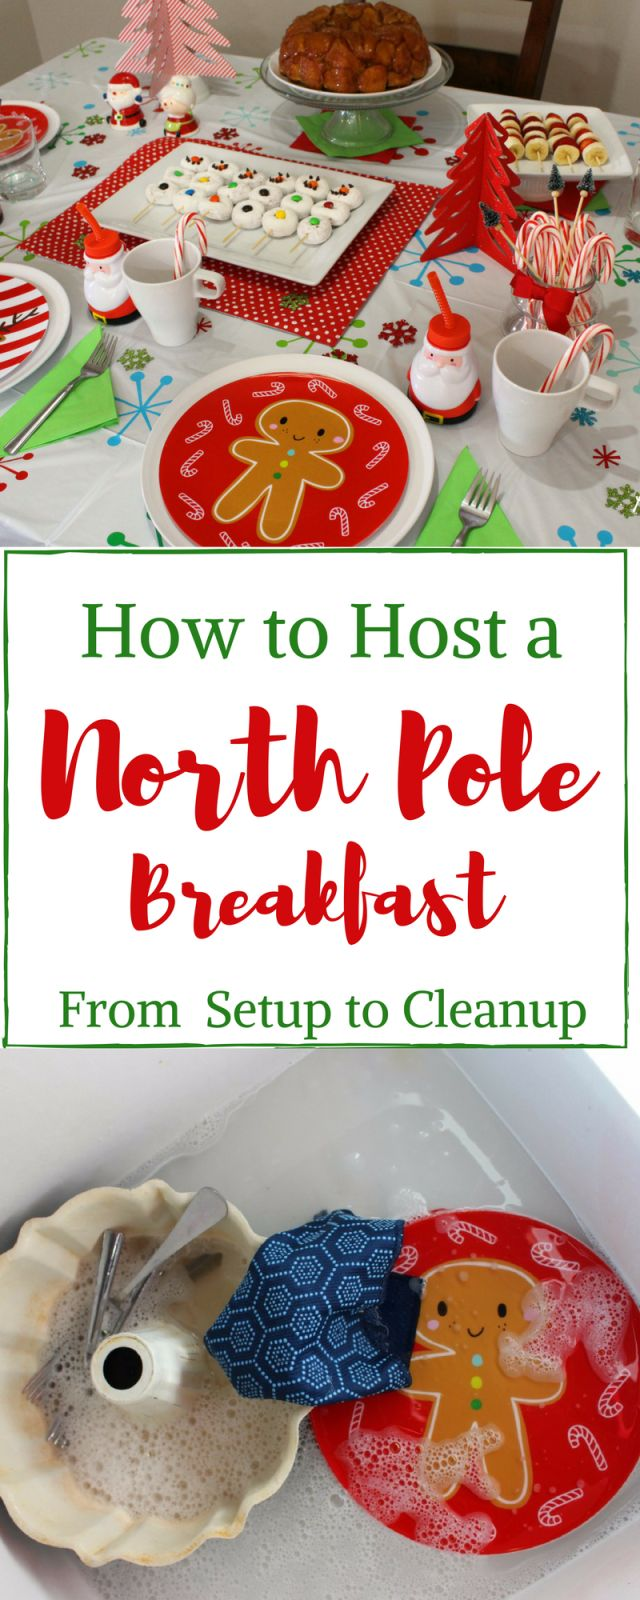 How to Host a North Pole #Holiday Breakfast, Setup to Cleanup via @OPLGBlog #happynowlinkup #feature http://ourprettylittlegirls.com/2016/11/how-to-host-a-north-pole-breakfast-tips-tricks.html/